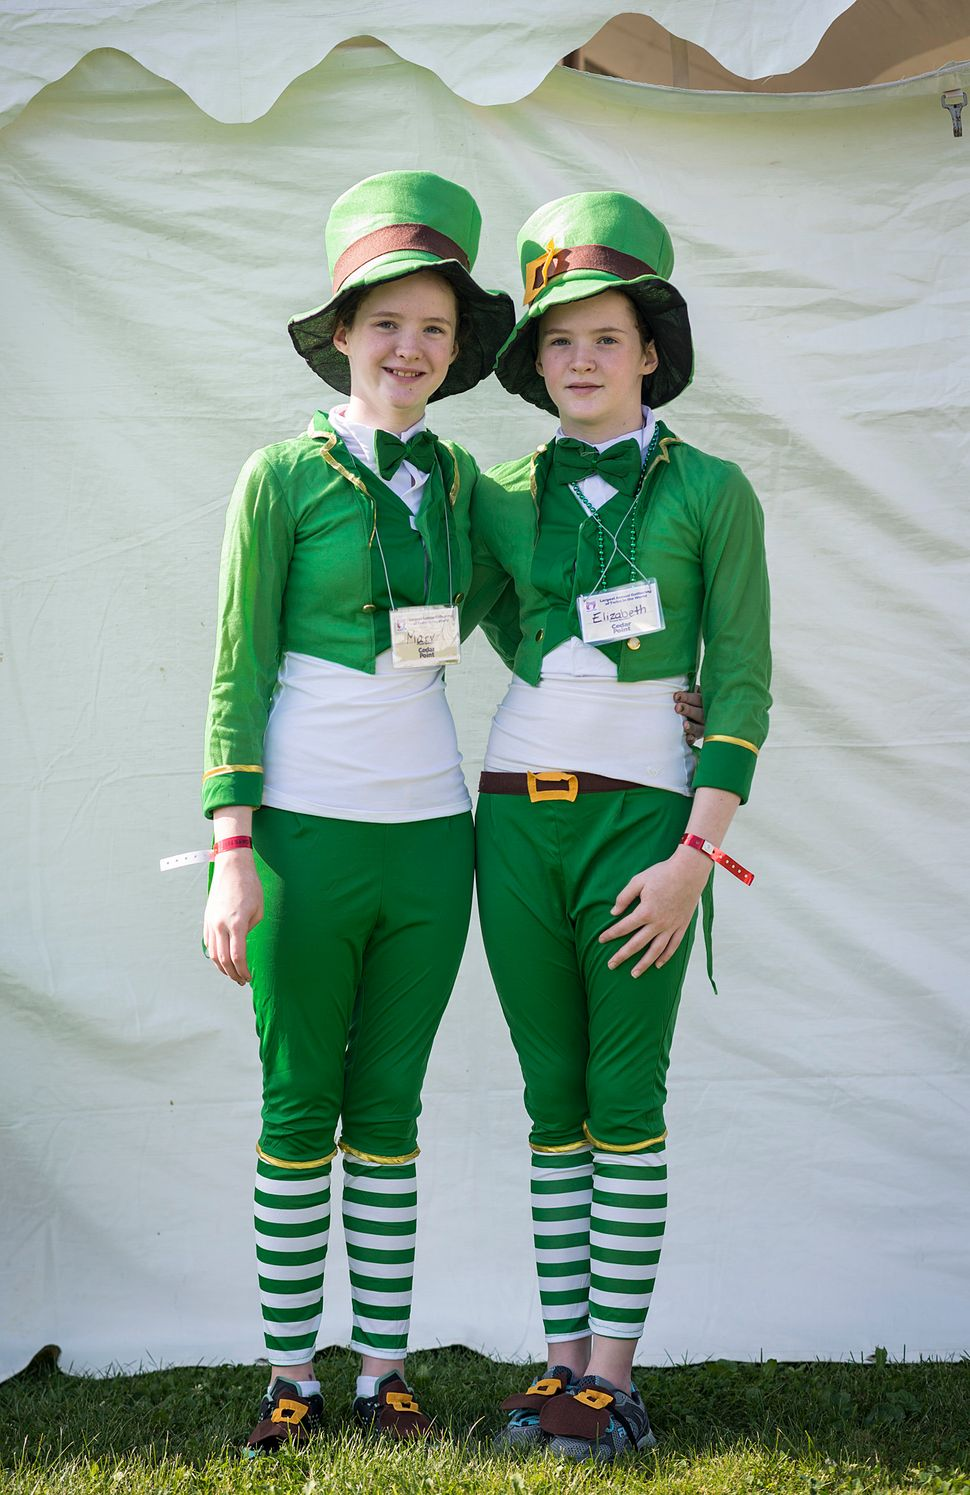 Mary (left) and Elizabeth Gillen have fun with their Irish history.